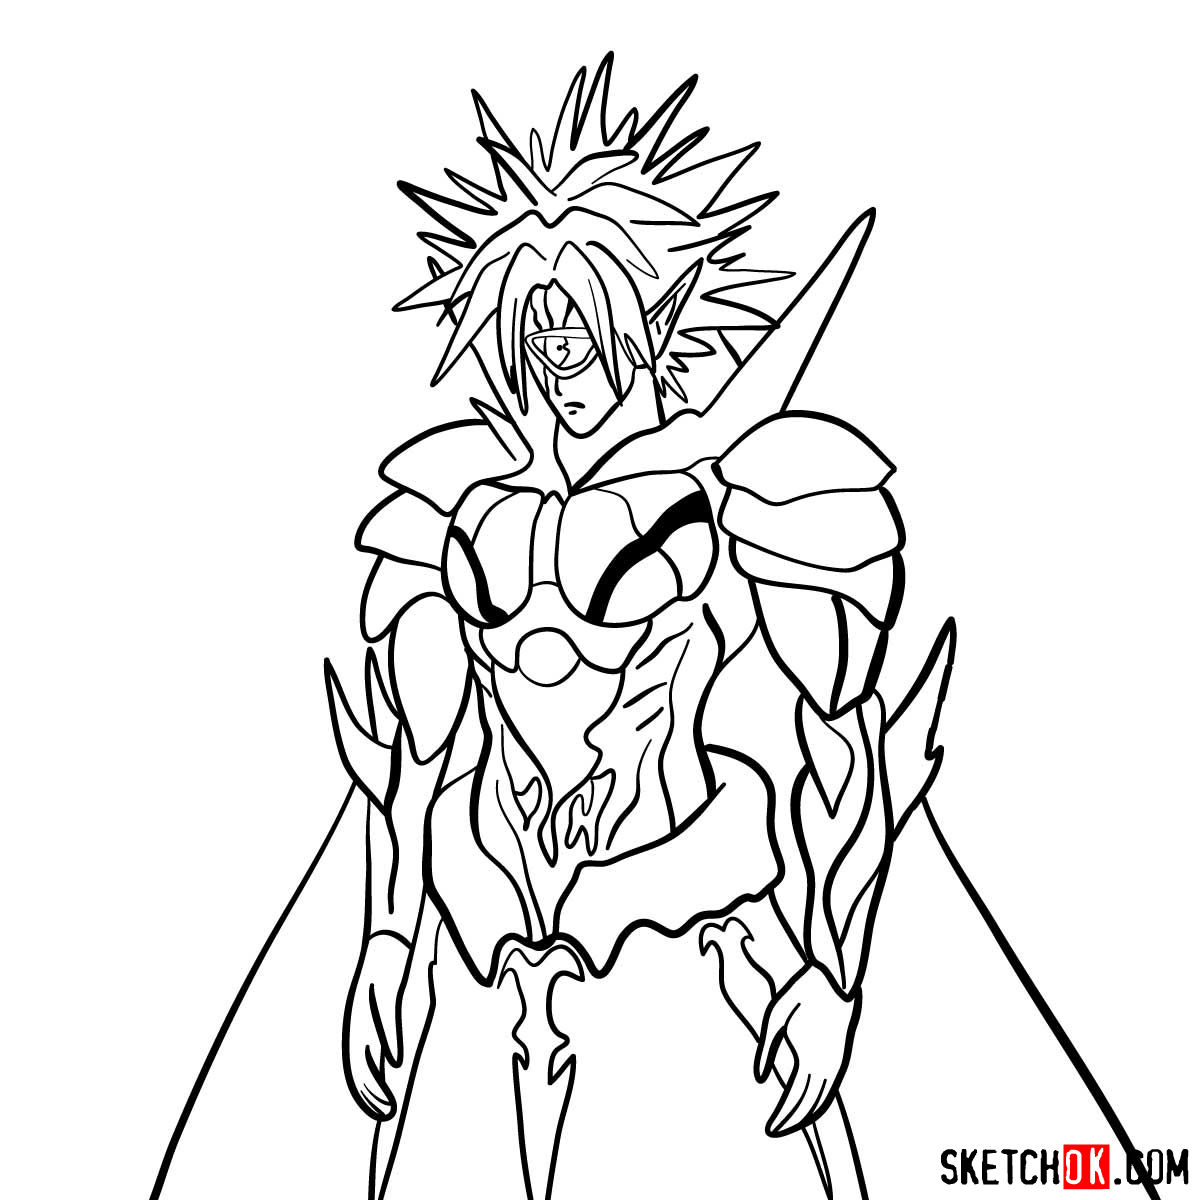 How to draw Boros | One-Punch Man